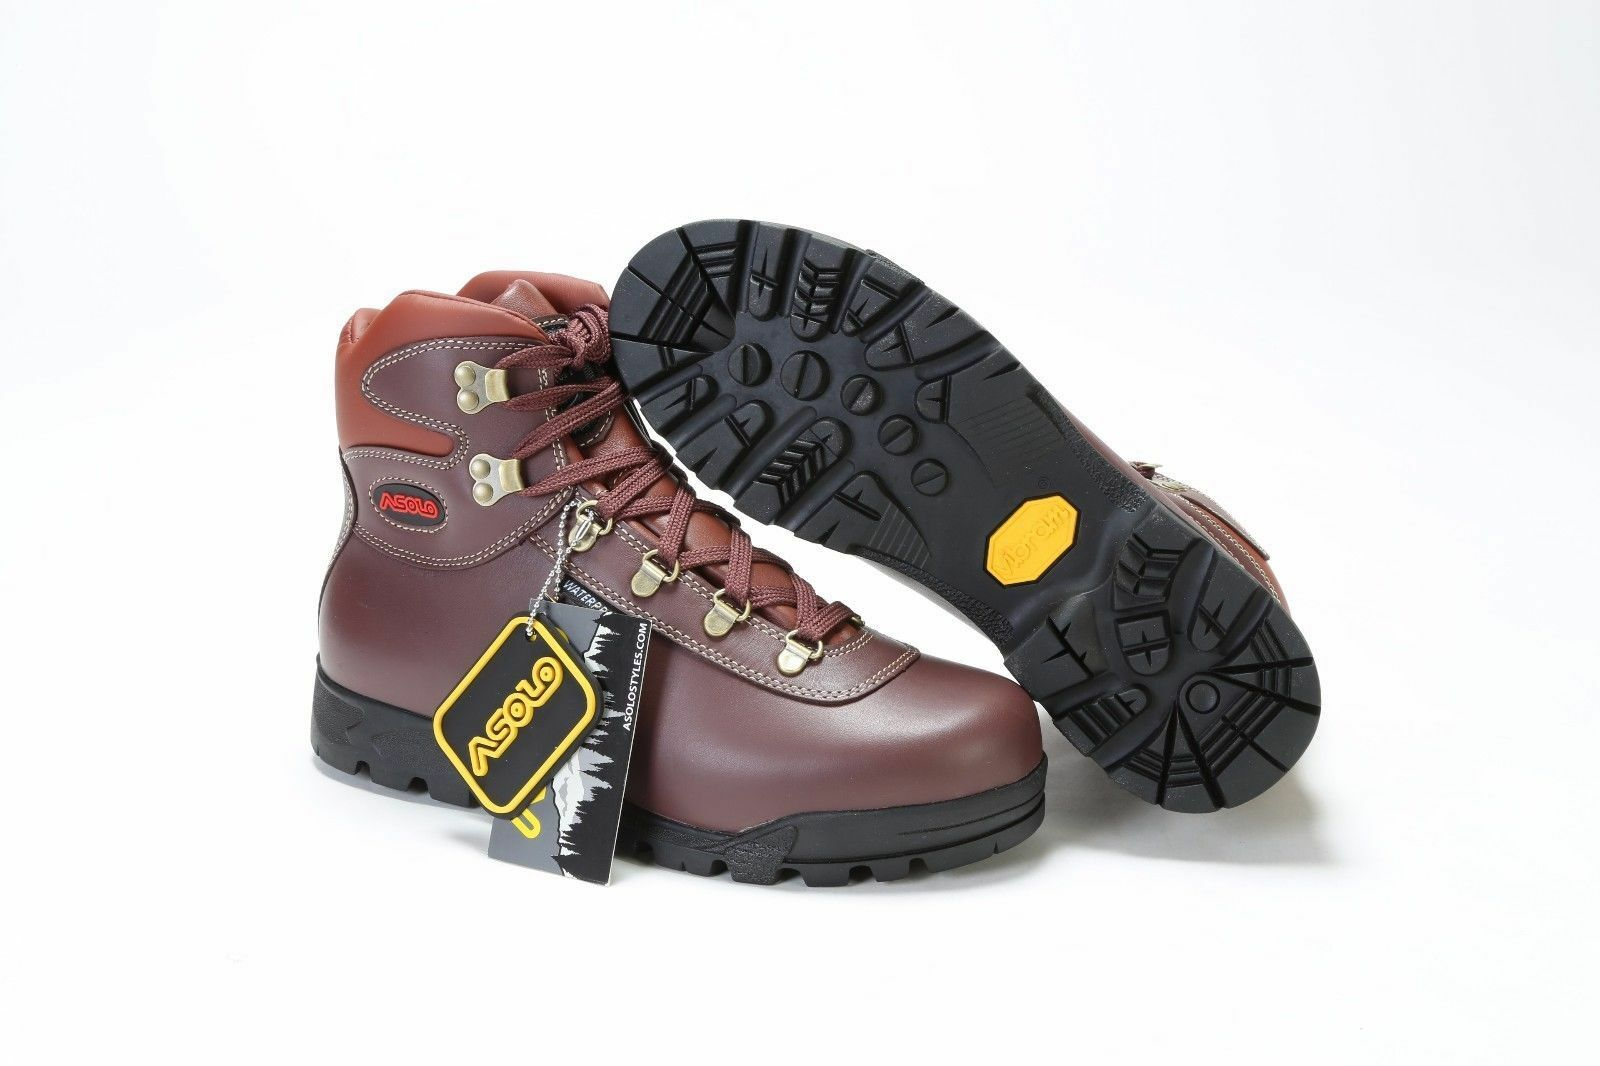 AUTHENTIC  MEN'S ASOLO SUNRISE BOOTS AS-402M BURGUNDY WATERPROOF WINTER BOOTS